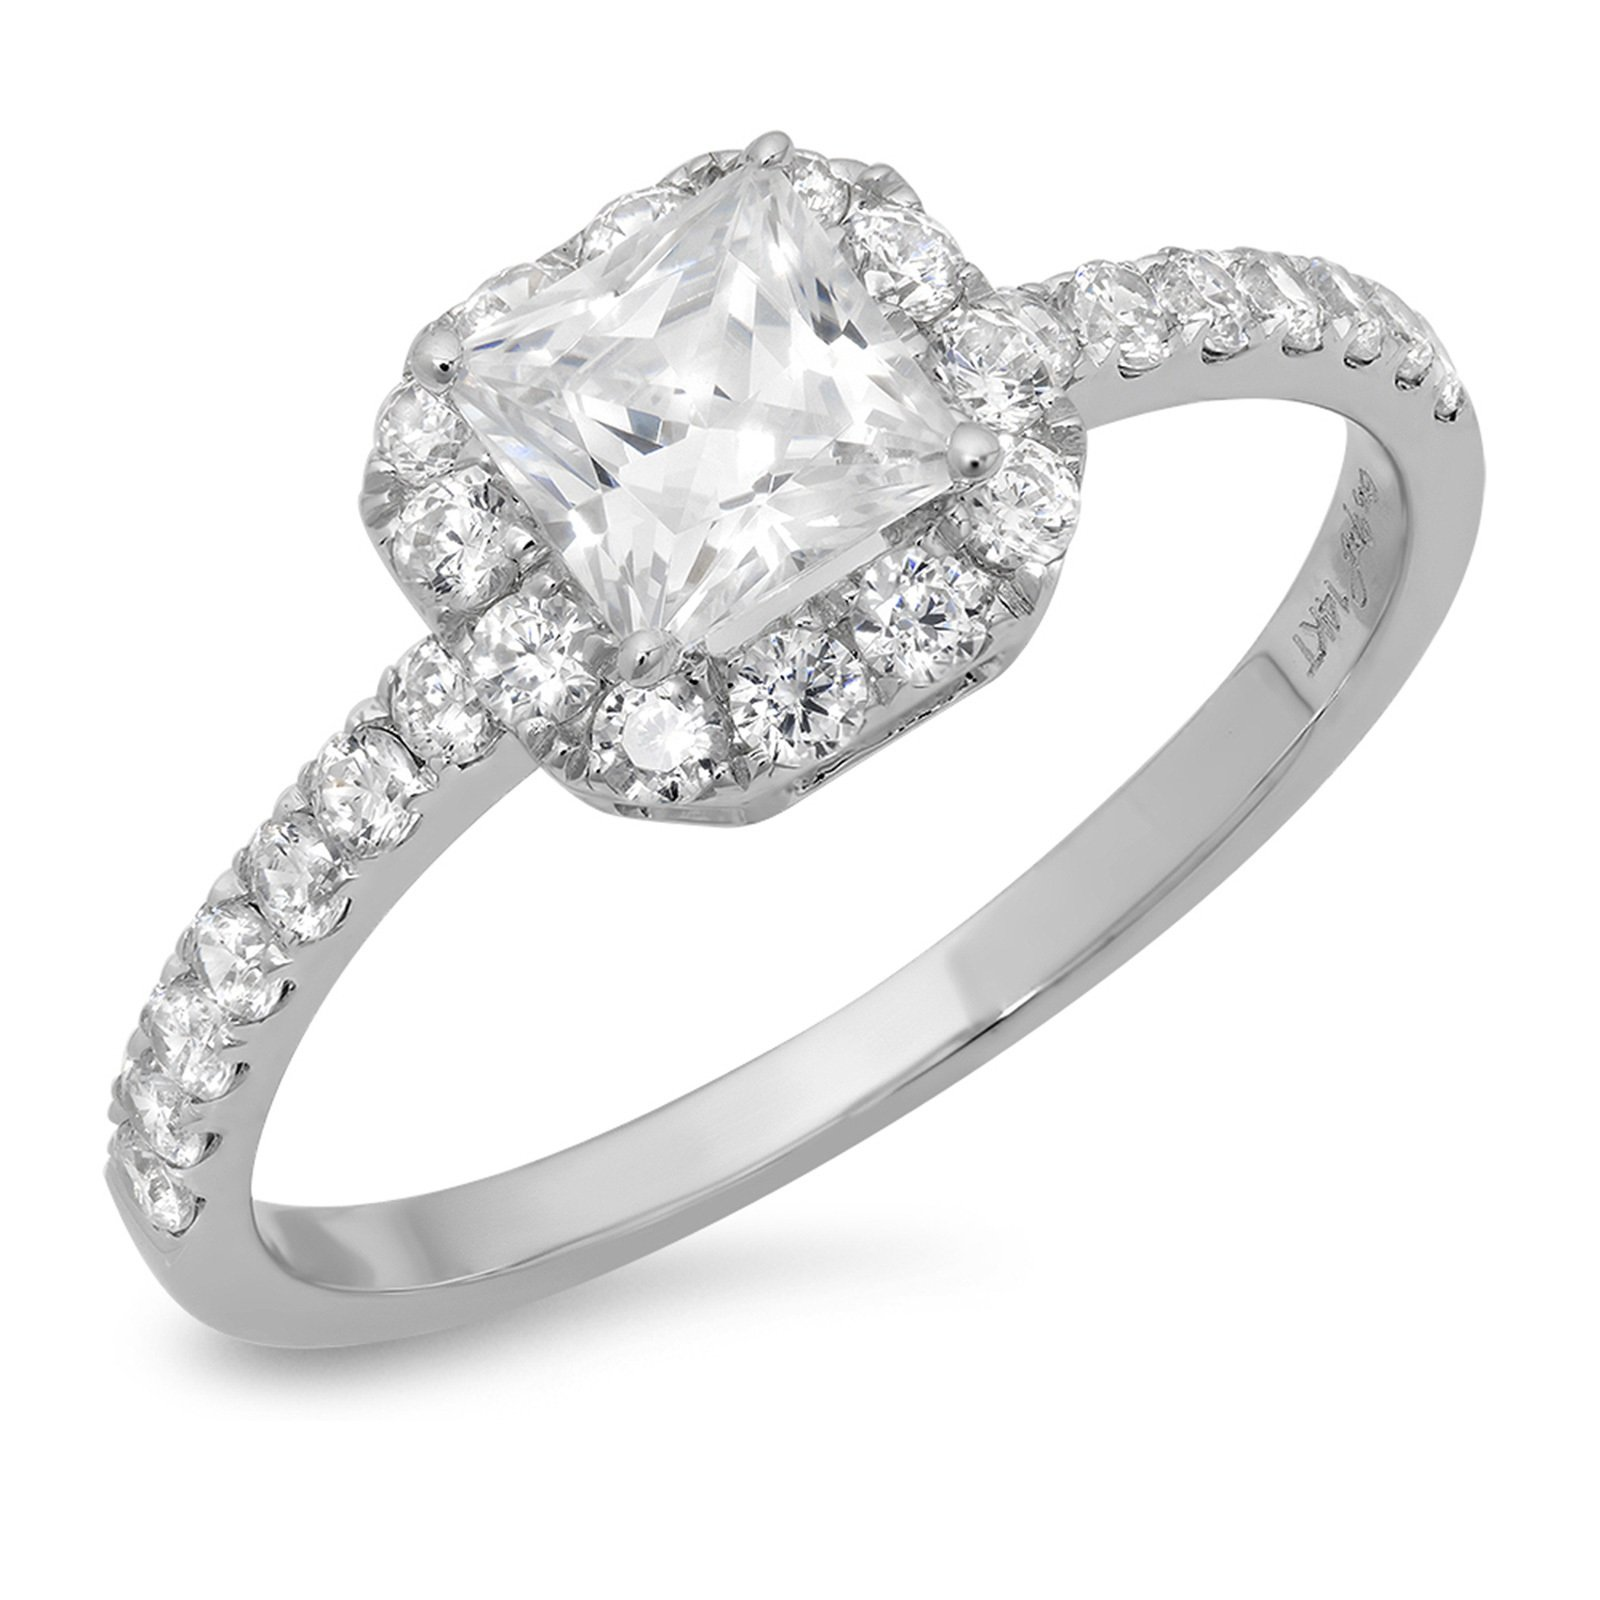 Clara Pucci 1.3 CT Princess Cut Pave Halo Bridal Engagement Promise Band Ring 14k White Gold, Size 6.25 by Clara Pucci